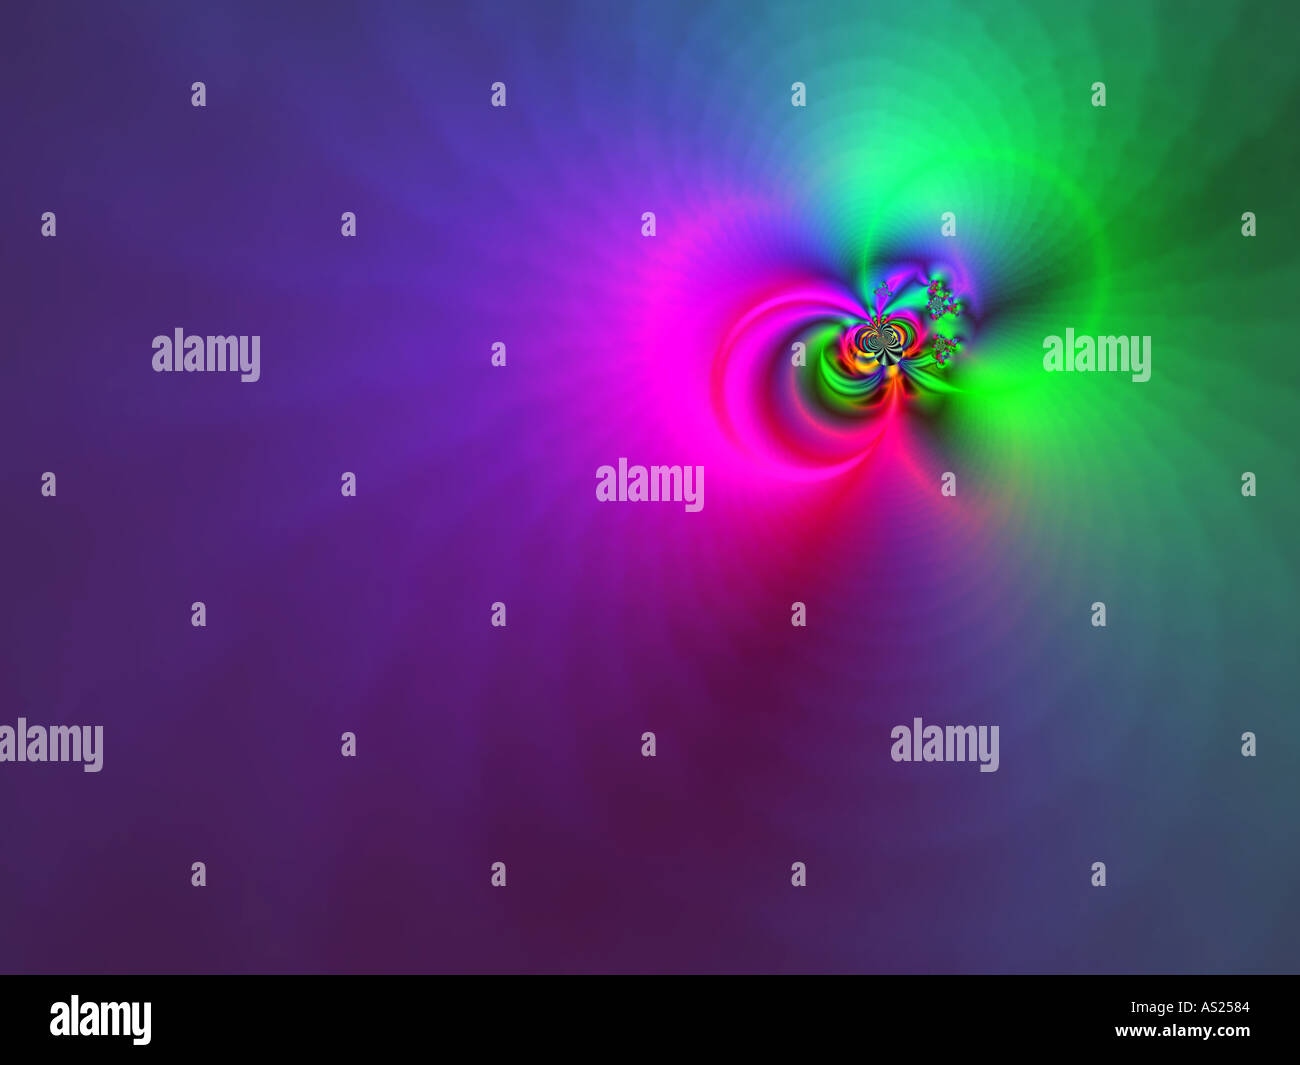 Green halo - Stock Image